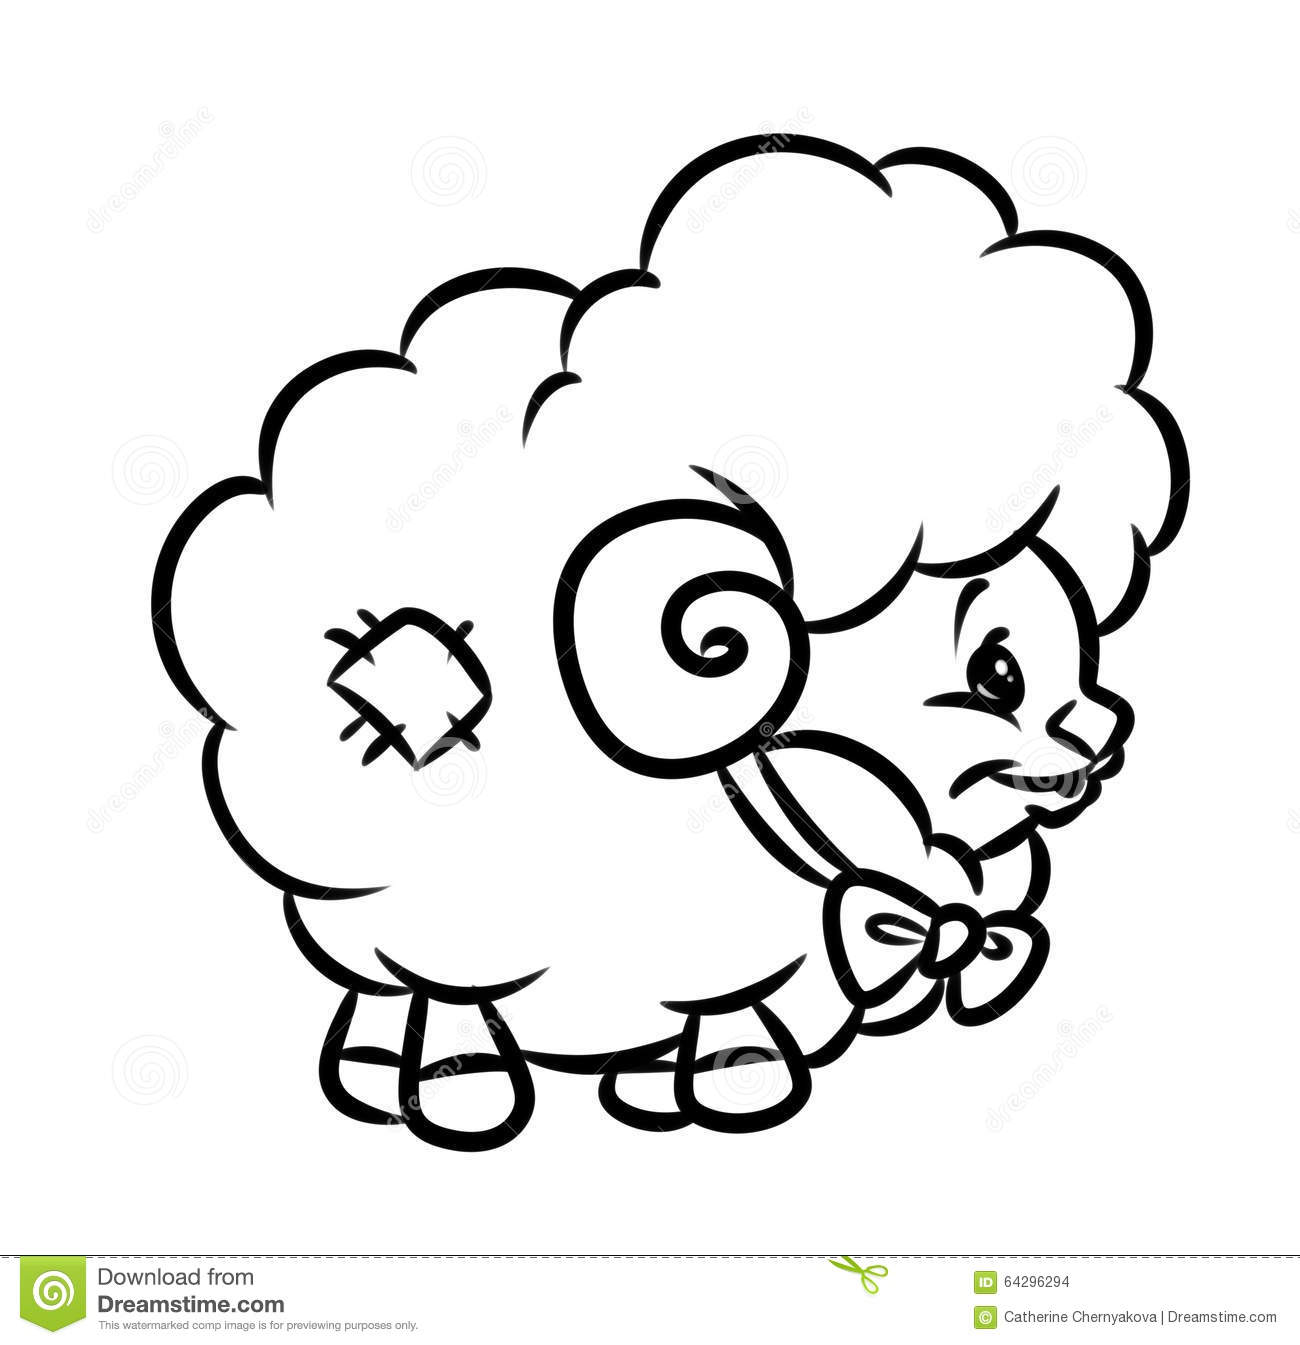 Toy lamb coloring page stock illustration. Illustration of line ...